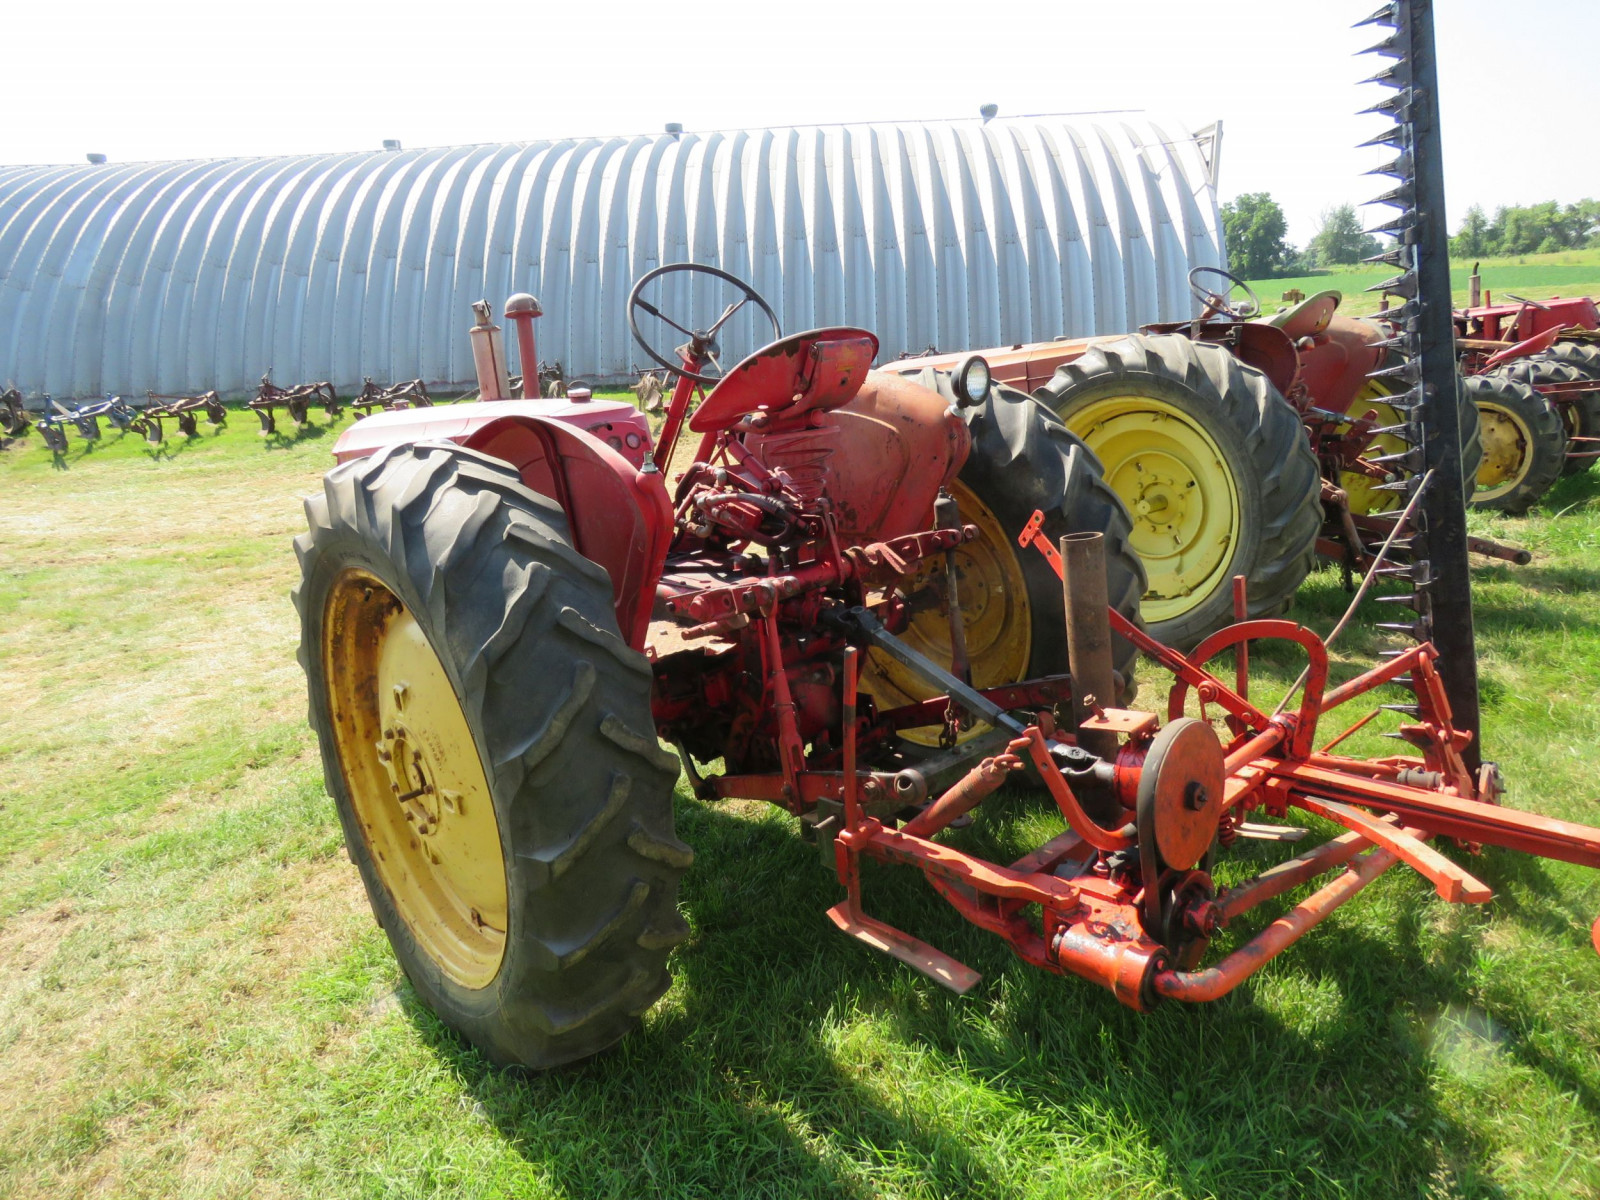 1955 Massey Harris 44 Special Tractor - Image 5